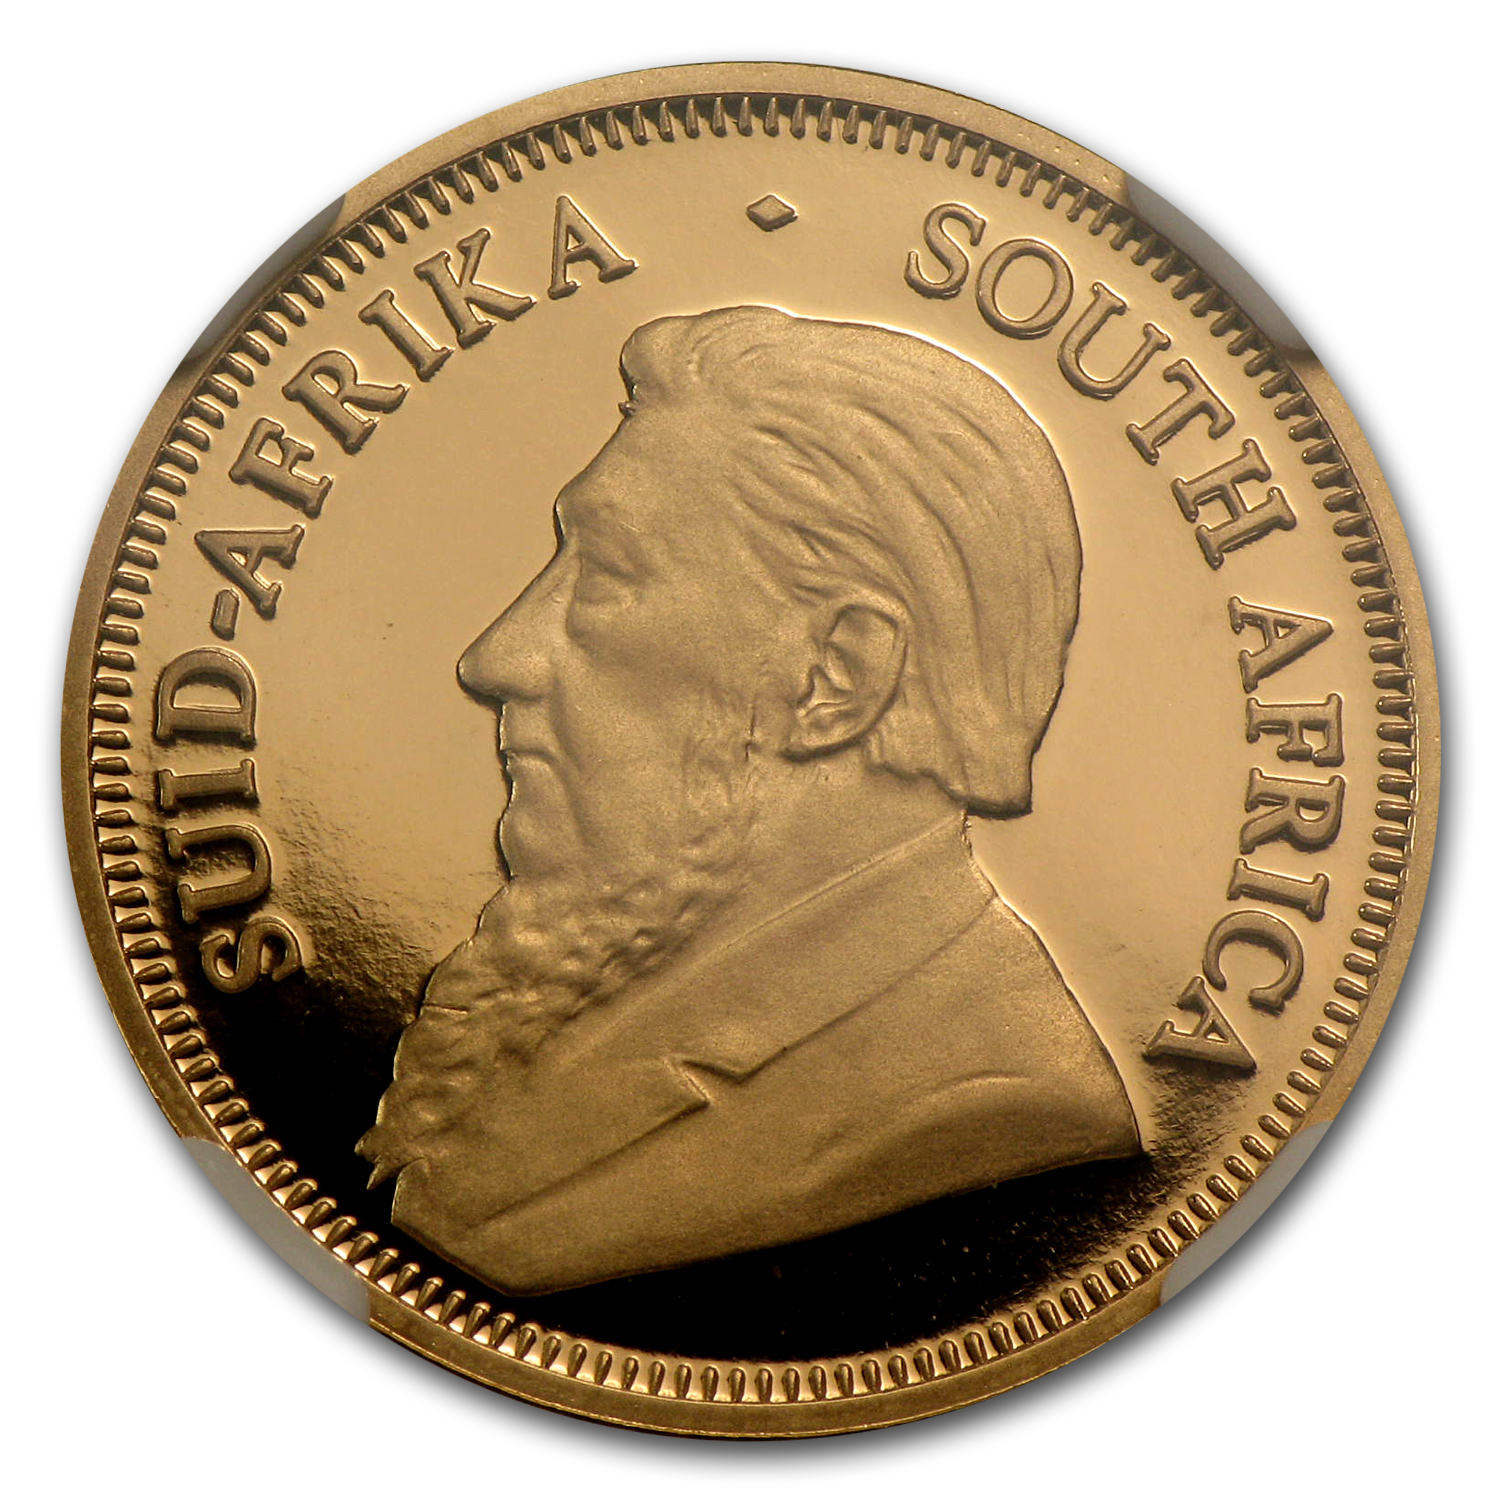 2006 1/4 oz Gold South African Krugerrand PF-70 NGC